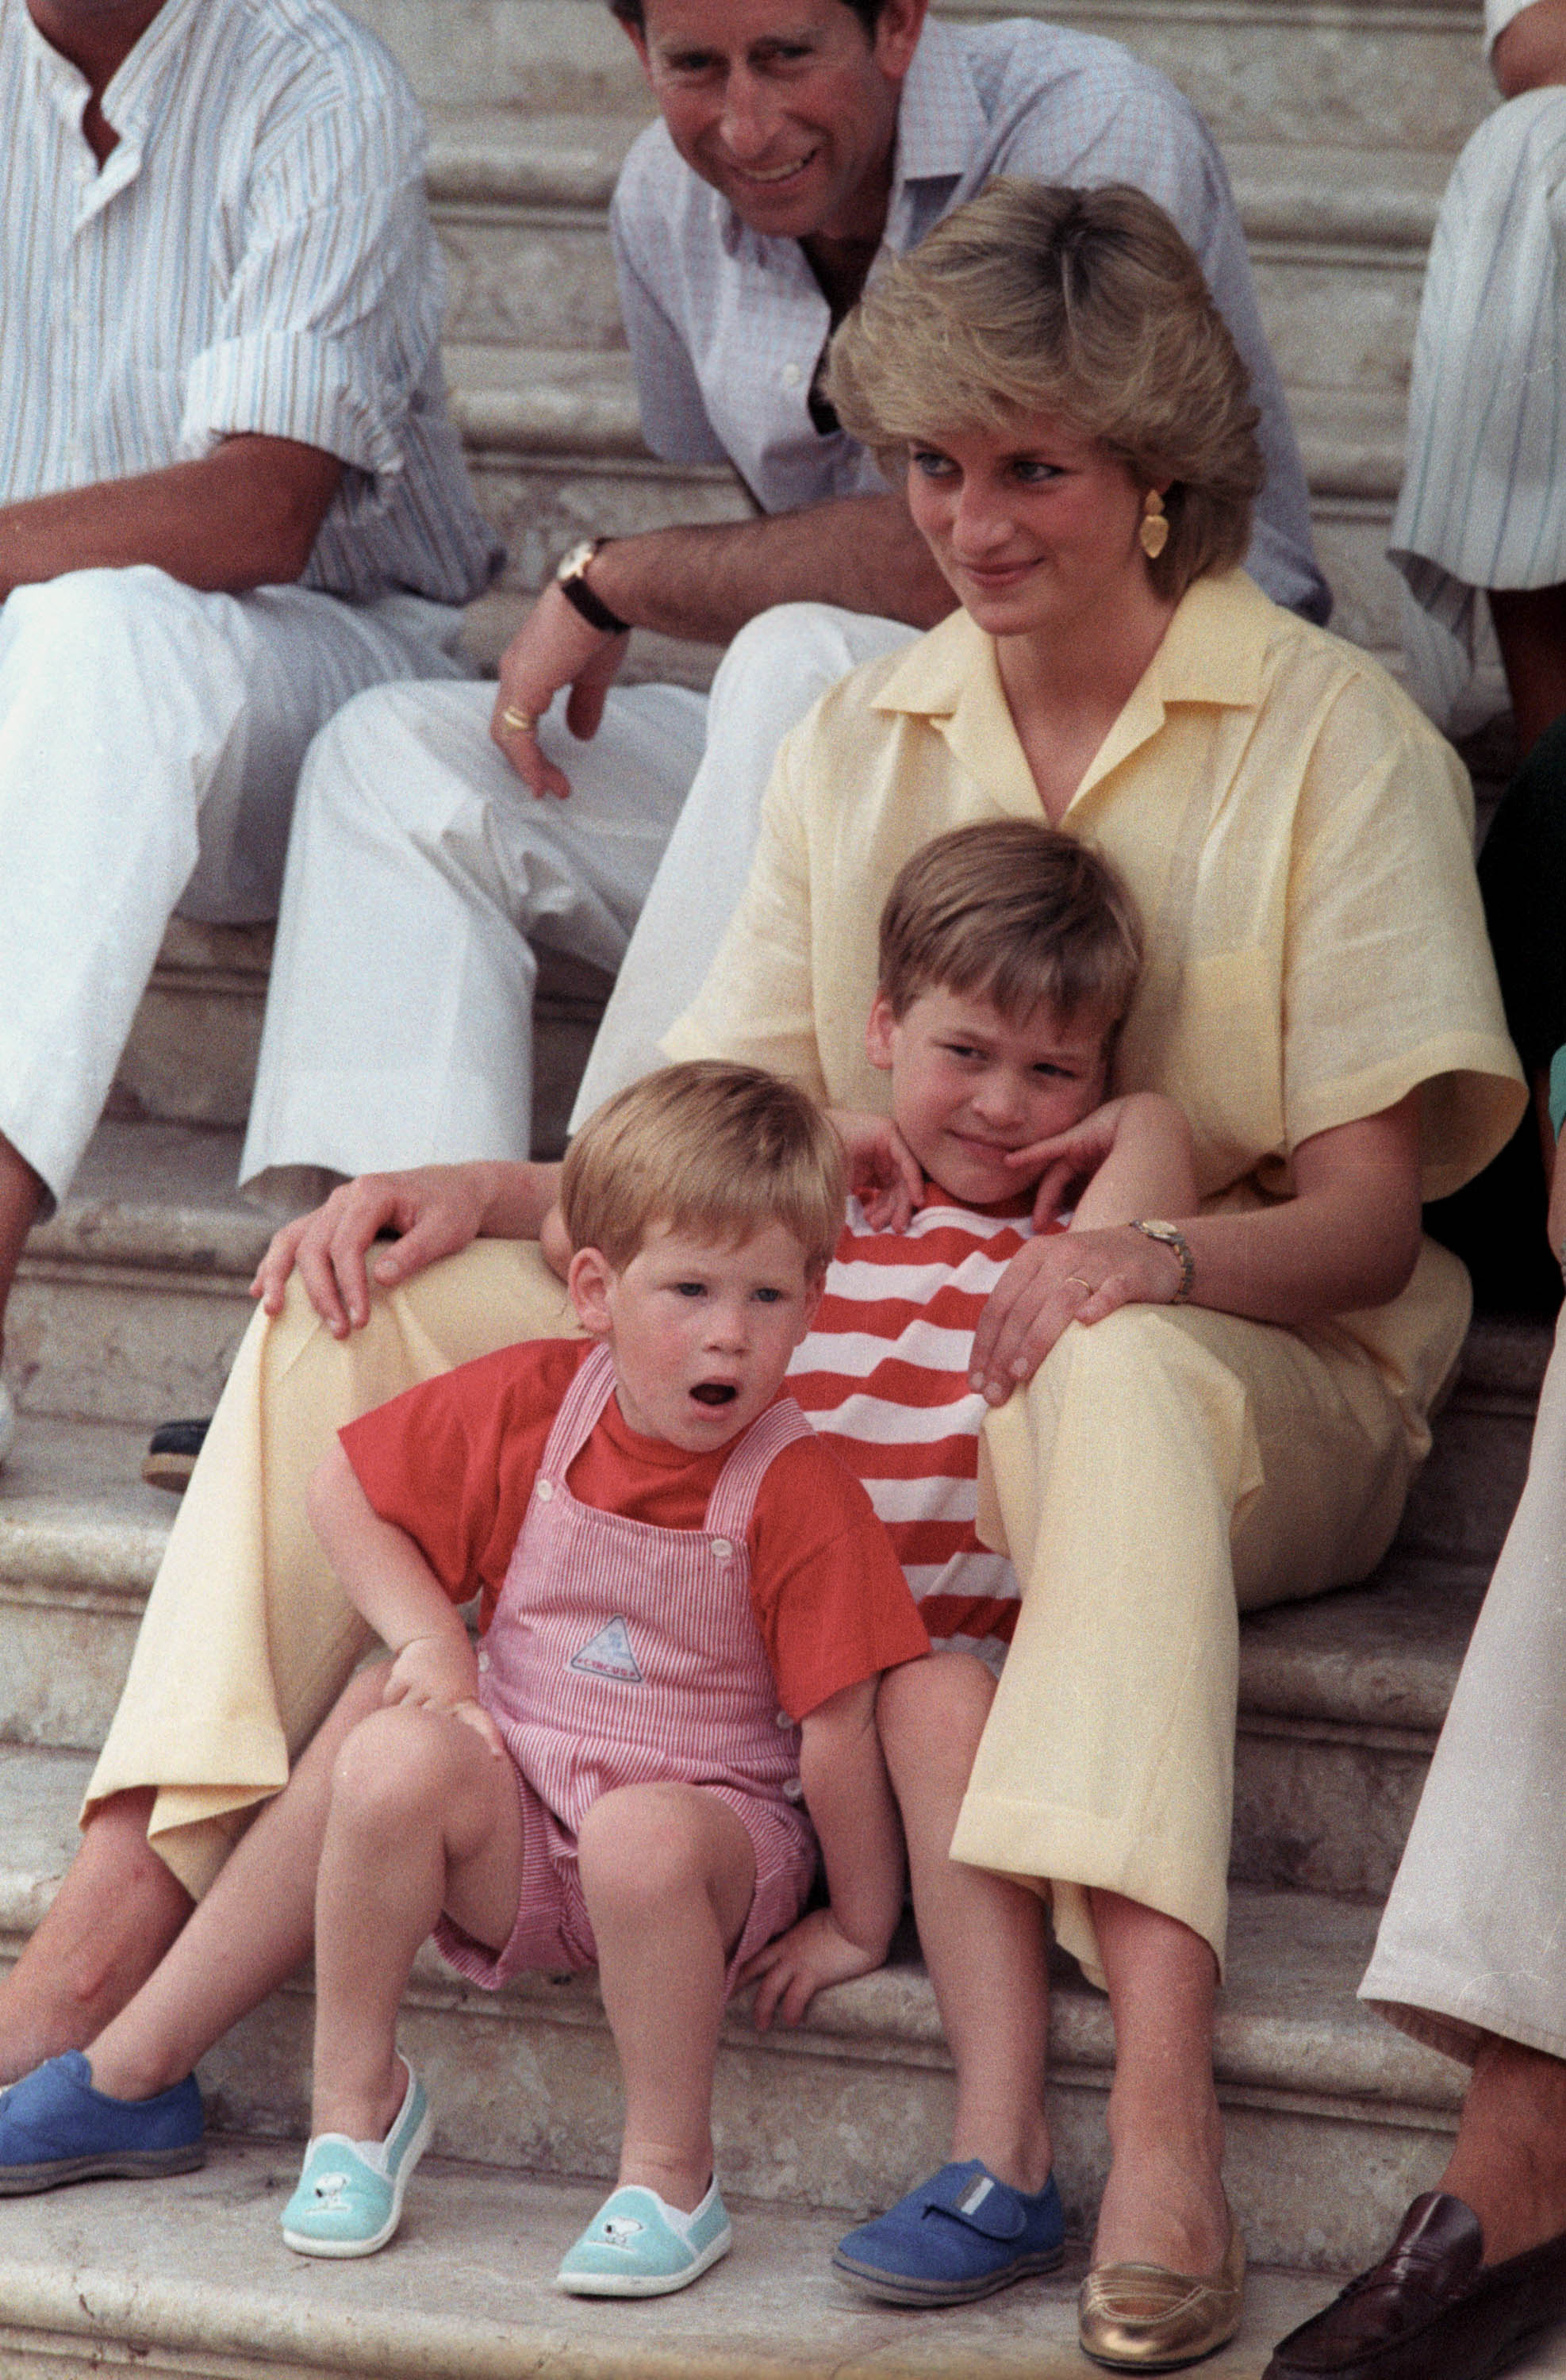 Princess Diana holds her two sons Prince William, 6, and Prince Harry, 3, (front) on Aug. 9, 1987, in Palma de Mallorca, Spain. Photo by Hugh Peralta/Reuters